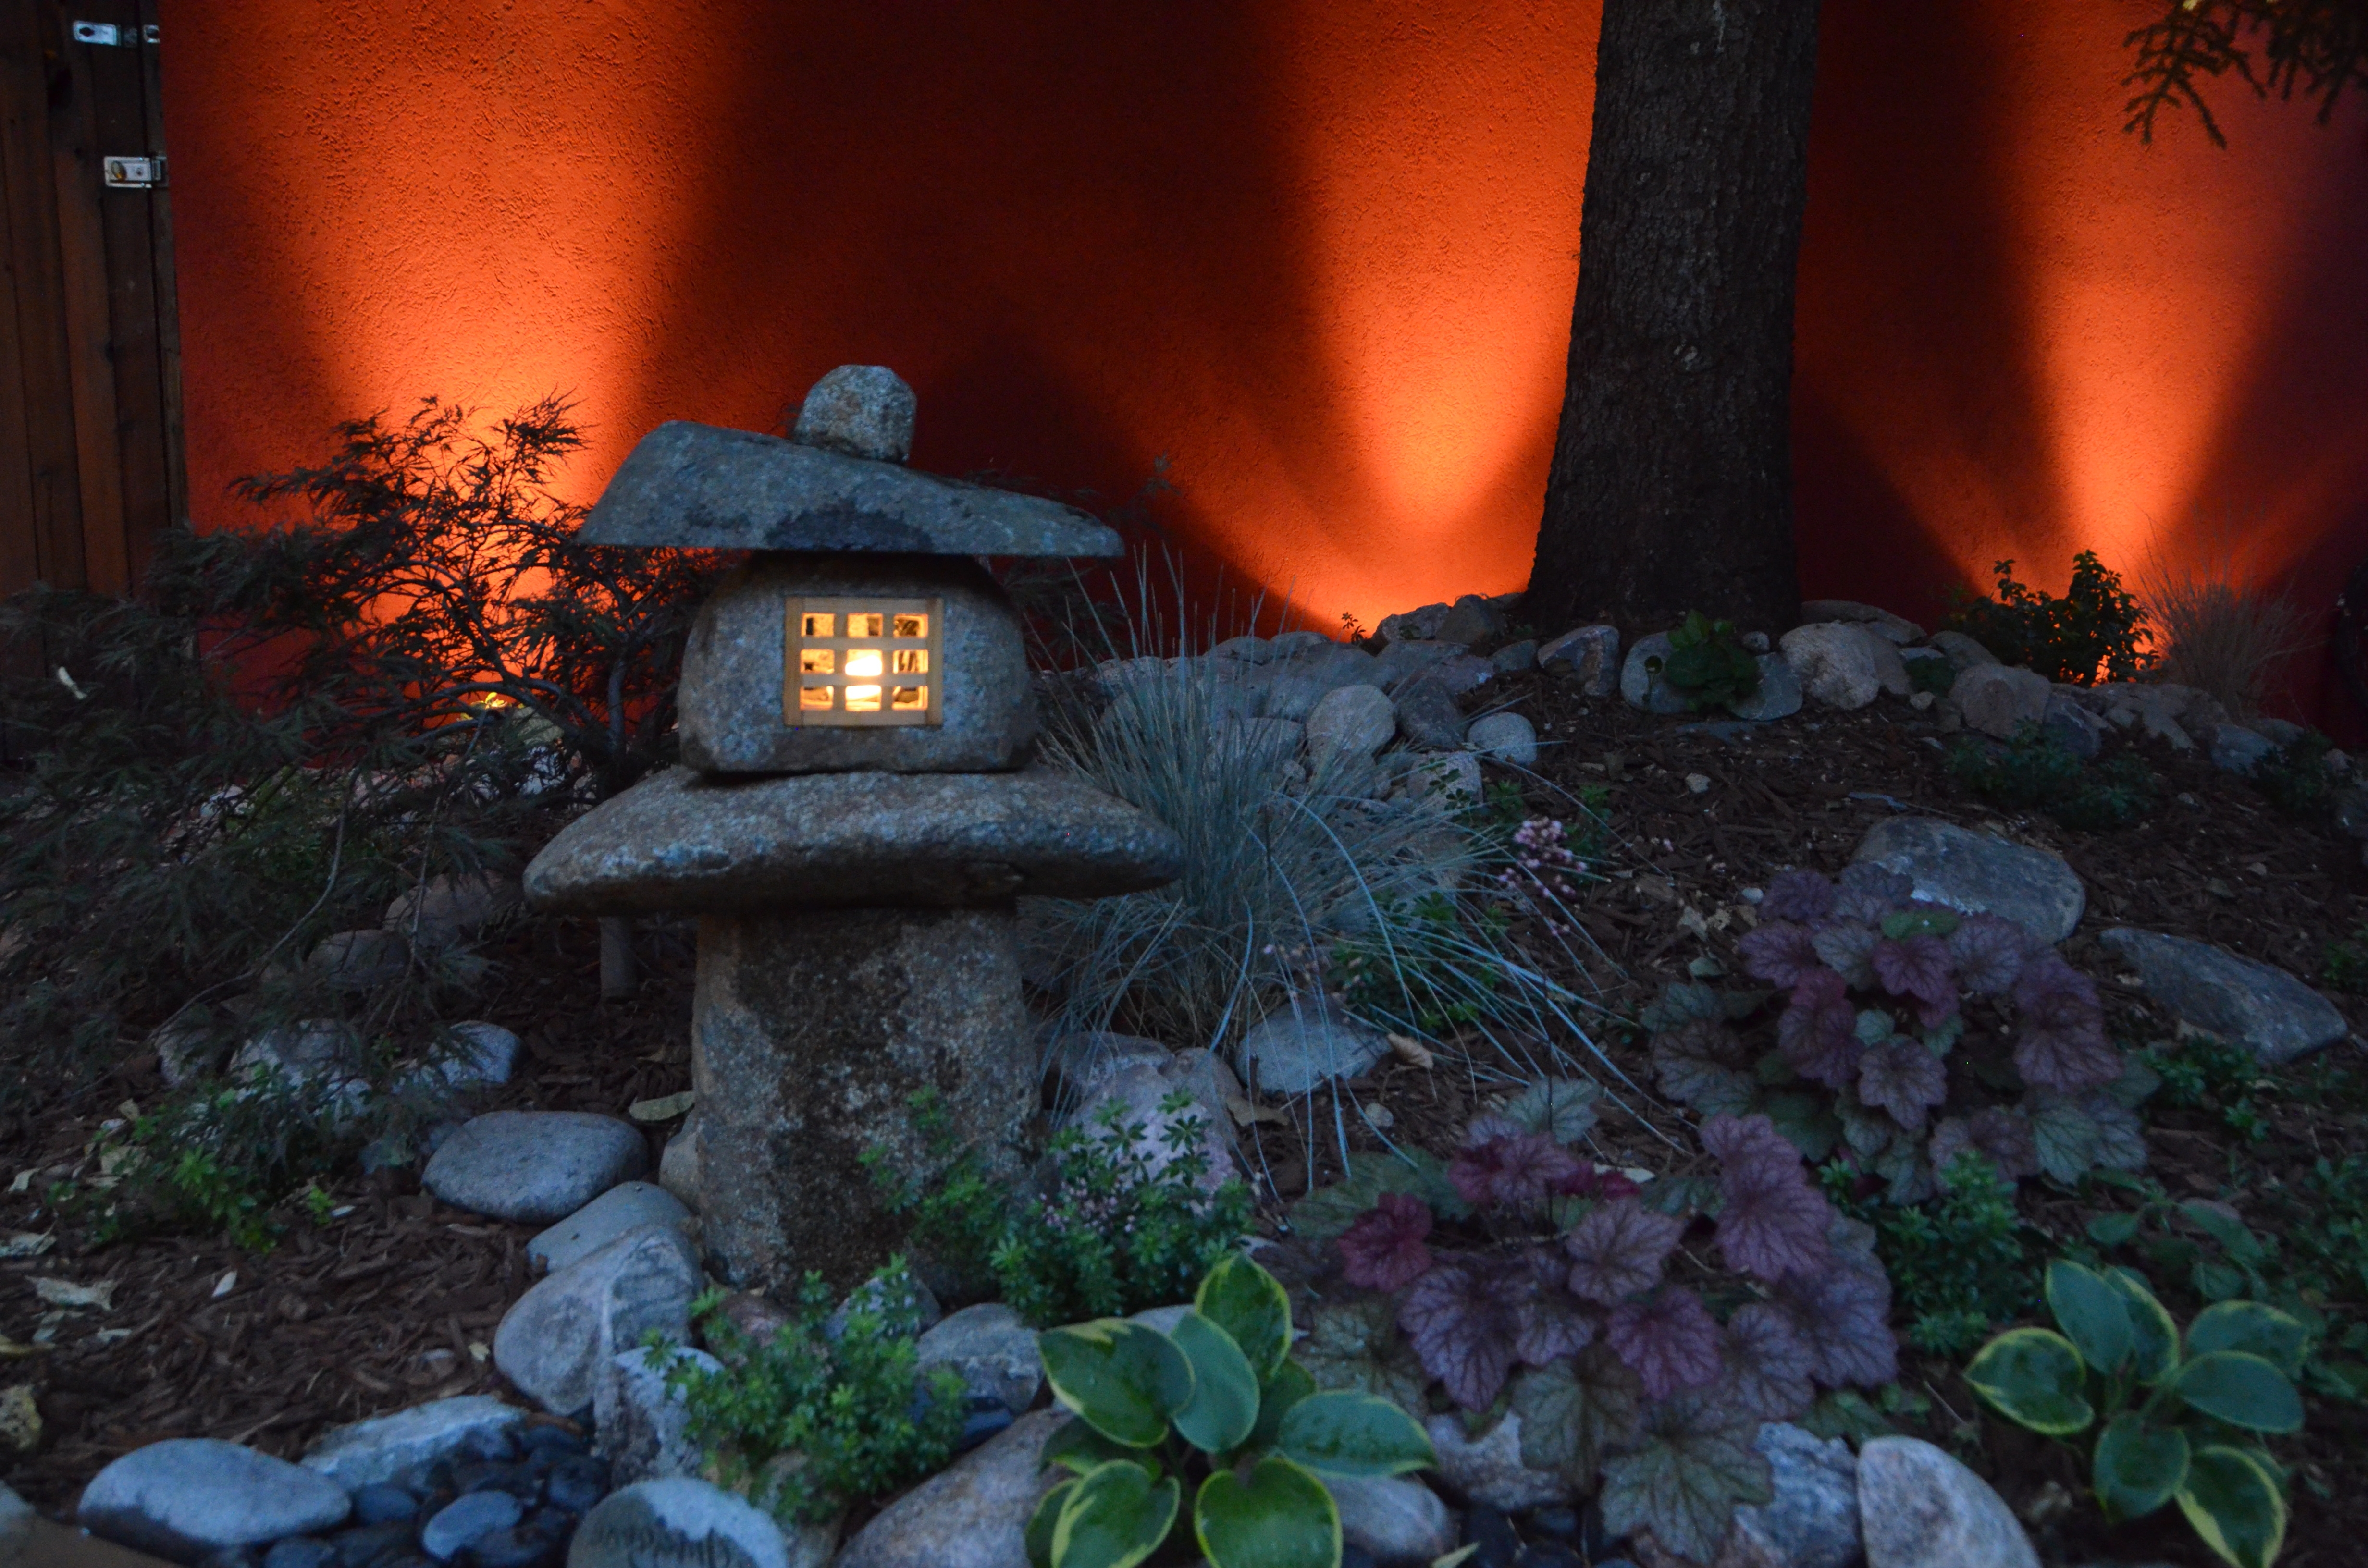 Famous Japanese Lantern With Outdoor Lighting – Landscaping In Denver Within Outdoor Japanese Lanterns (View 3 of 20)